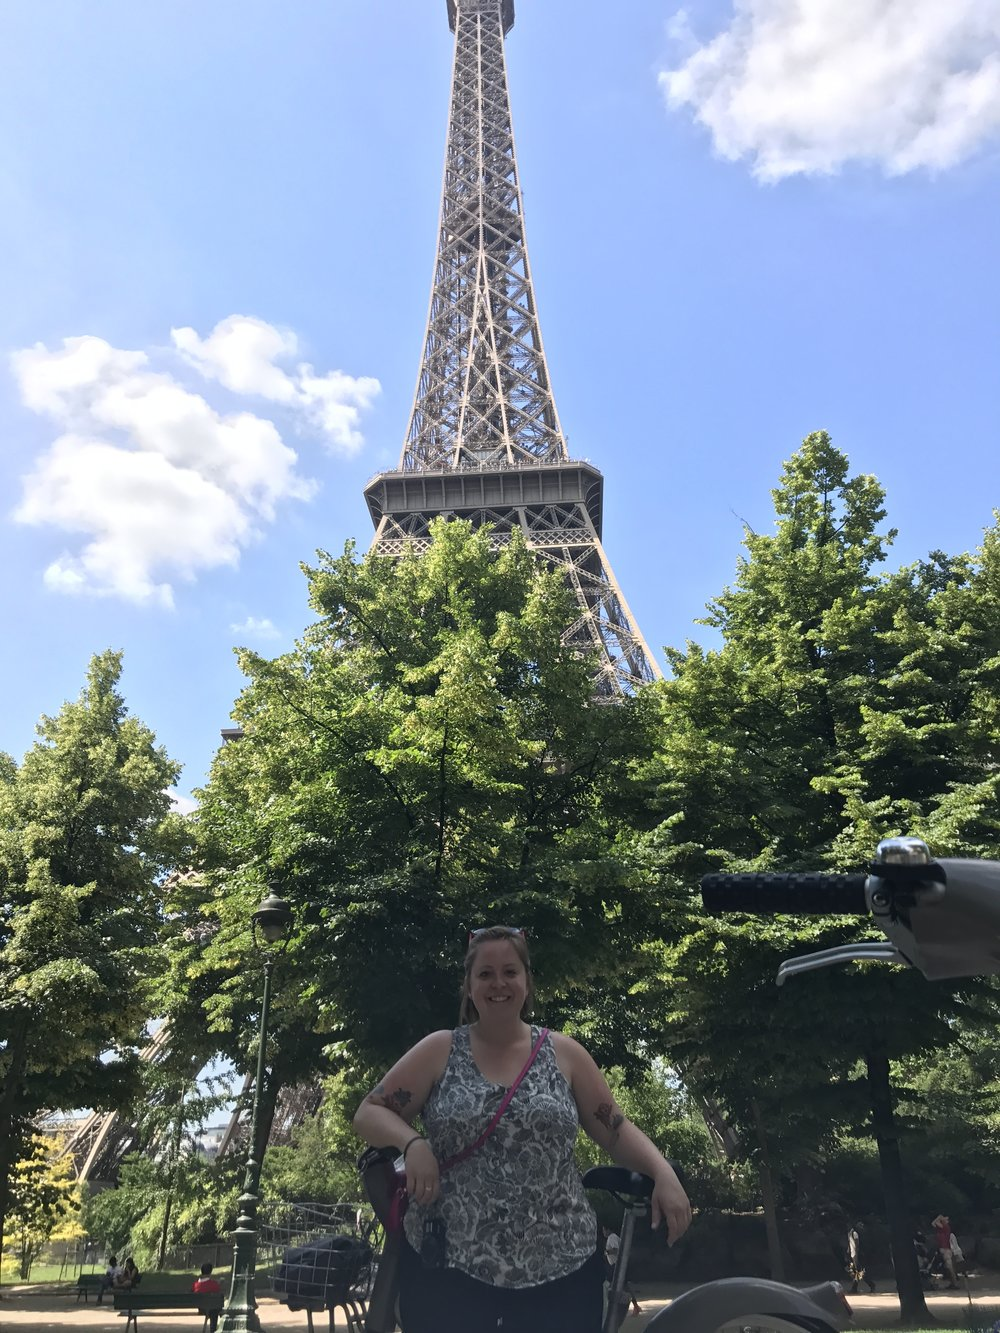 Yours truly under the Eiffel Tower